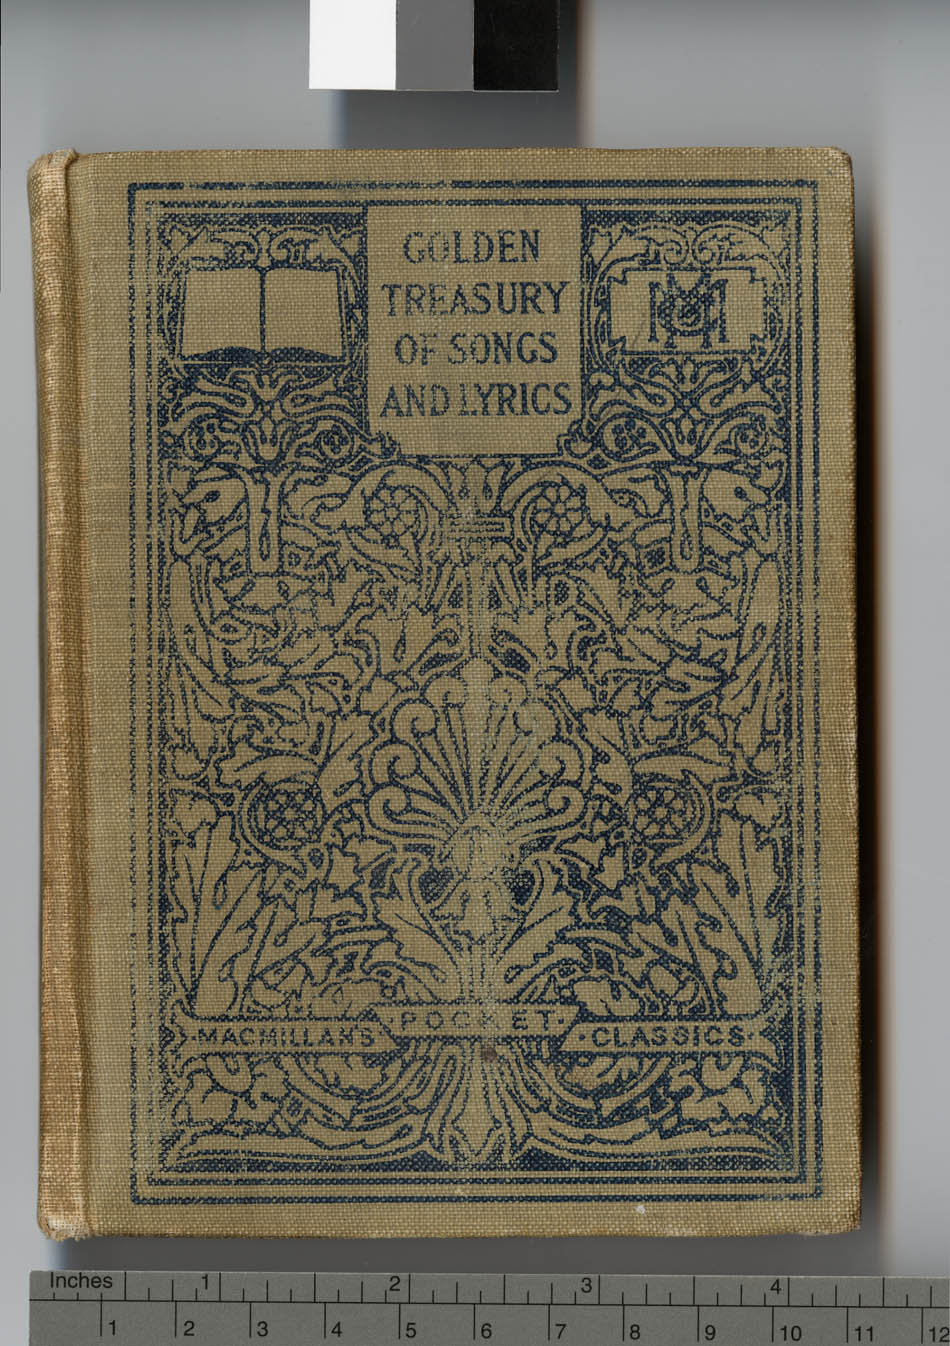 Front cover and bookplate of Golden treasury of songs and lyrics